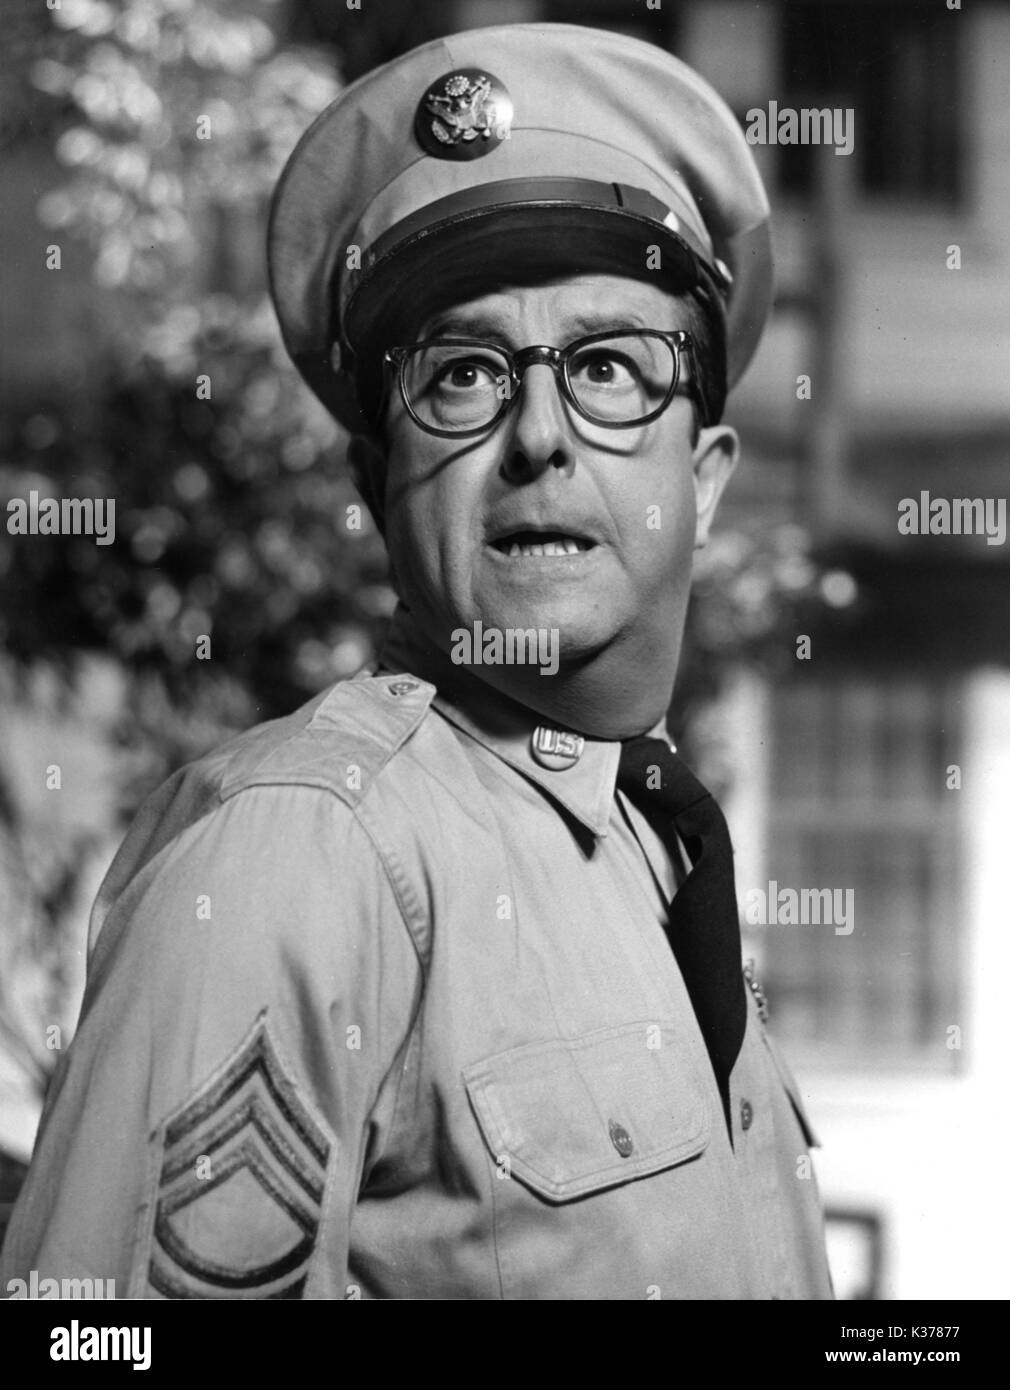 SERGEANT BILKO PHIL SIVERS - Stock Image